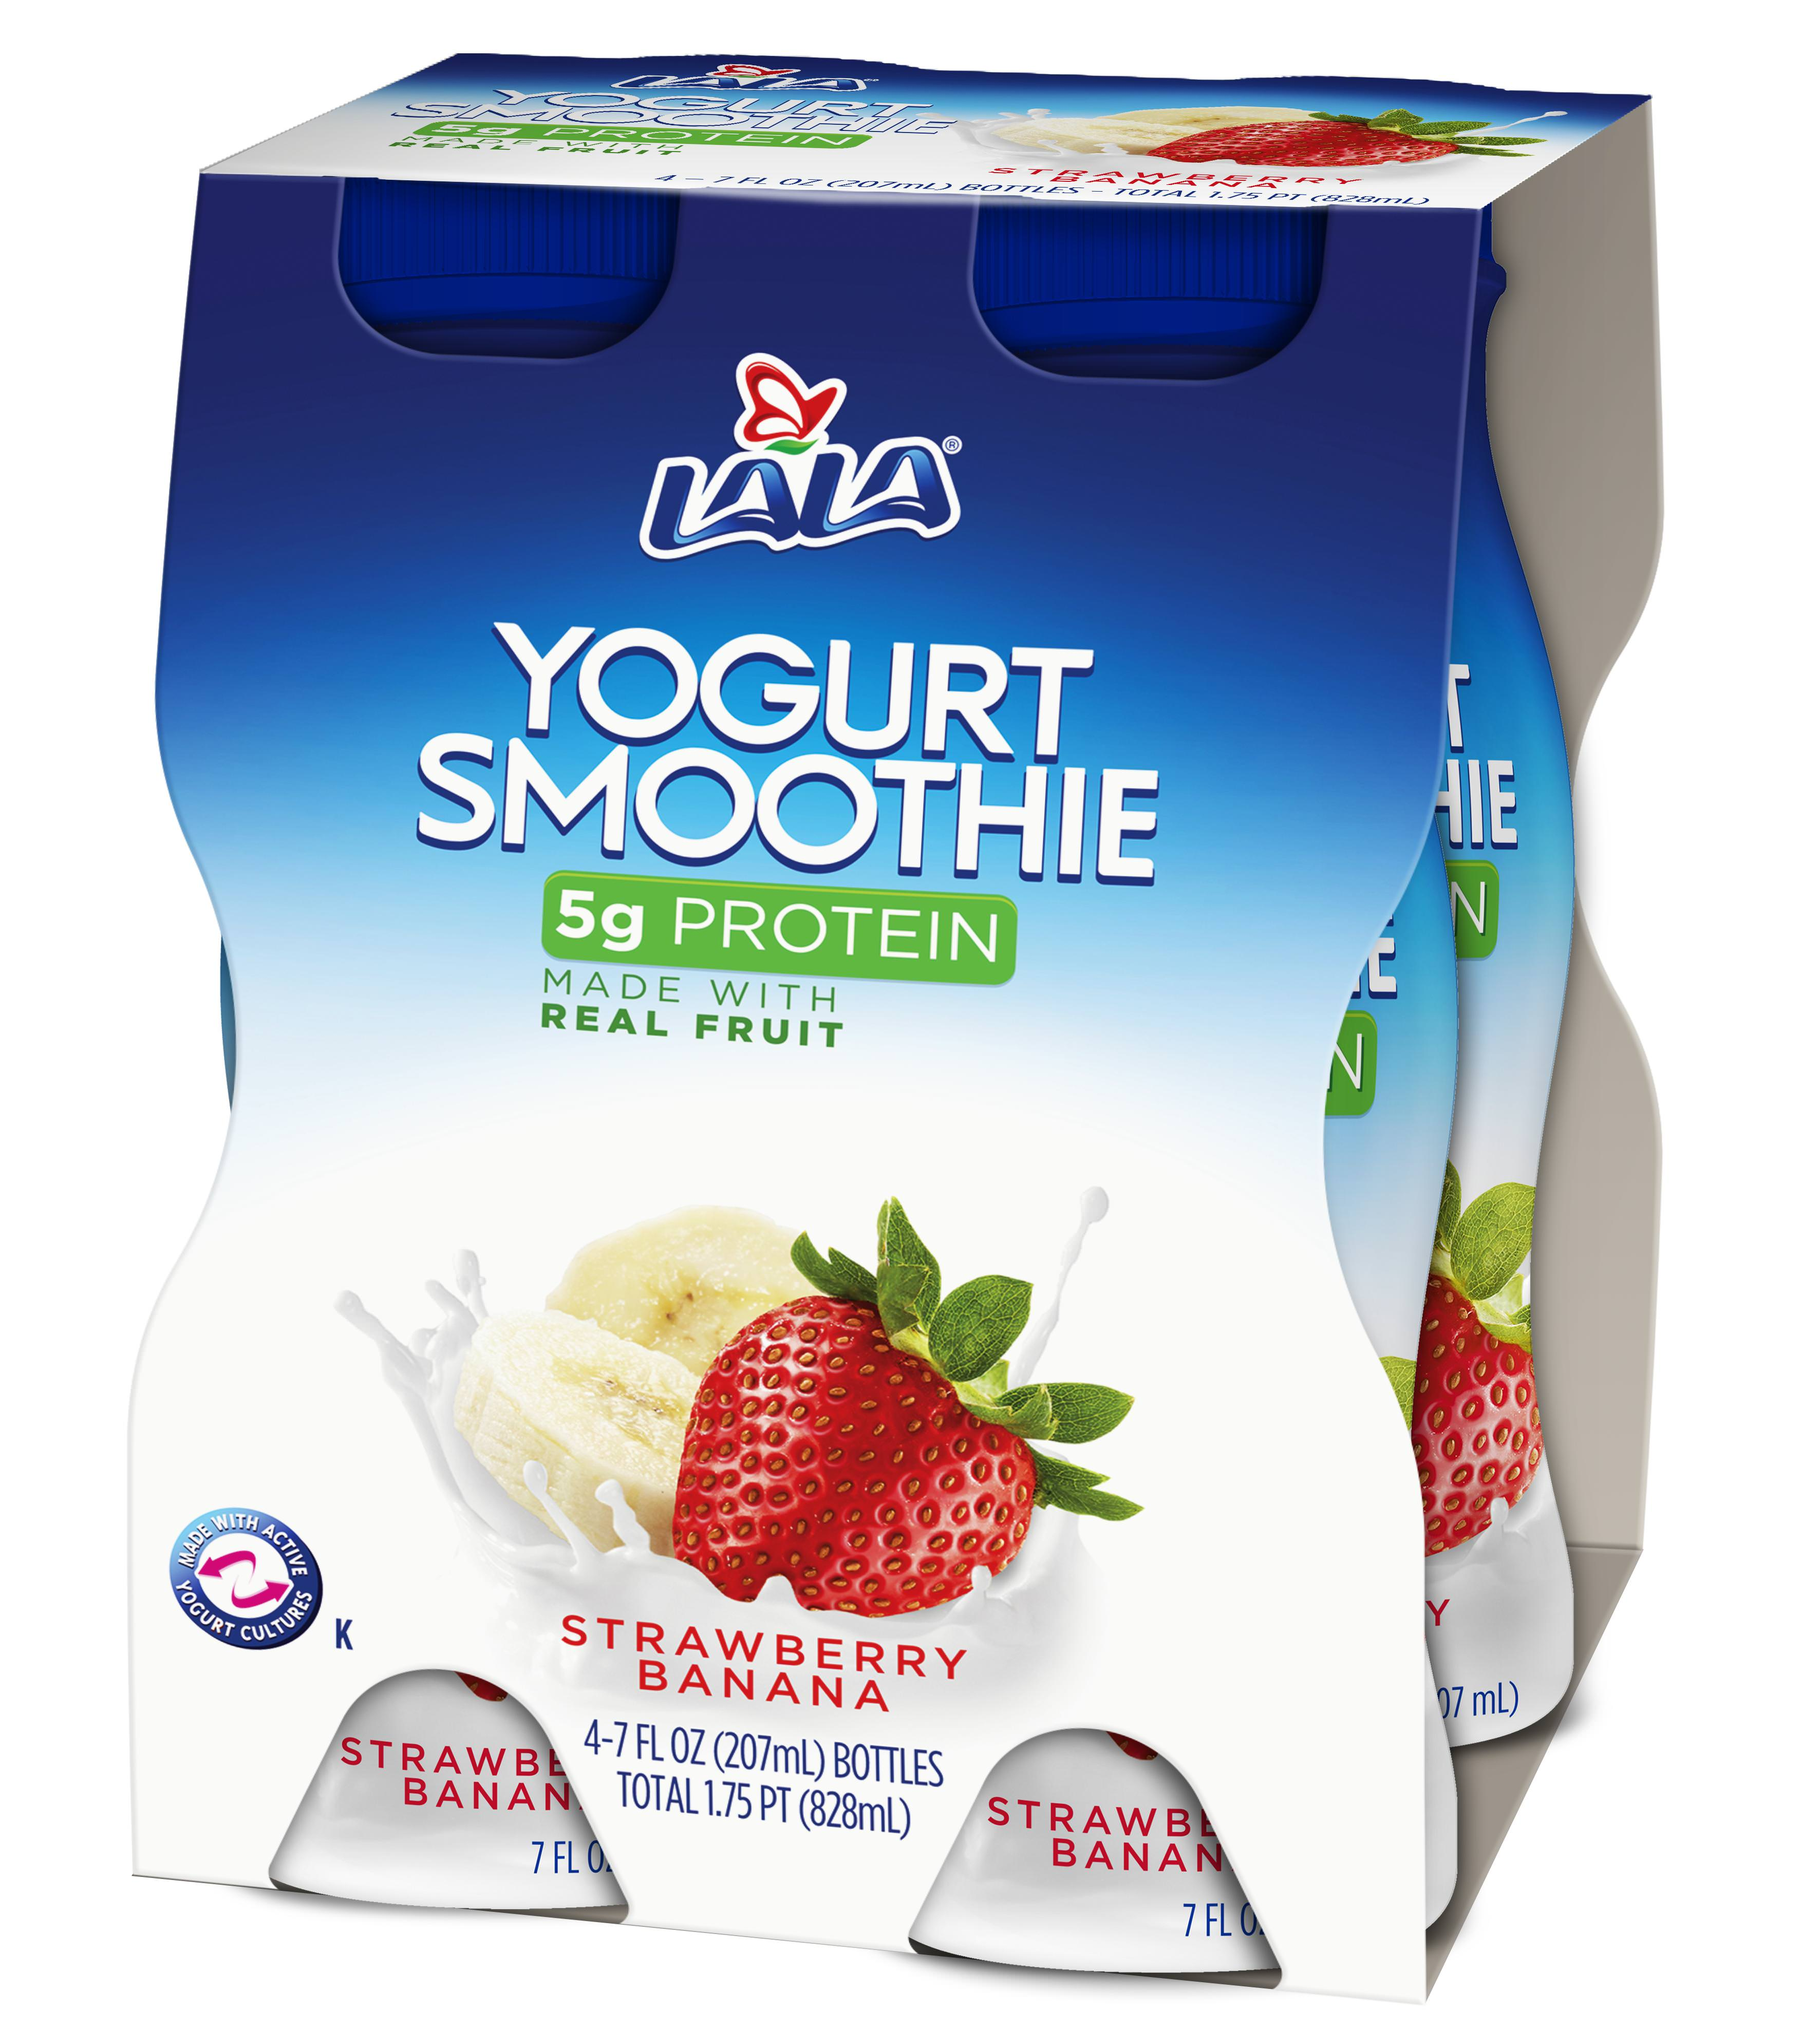 LALA Drinkable Yogurt, Strawberry Banana, 7-oz, 4 Count